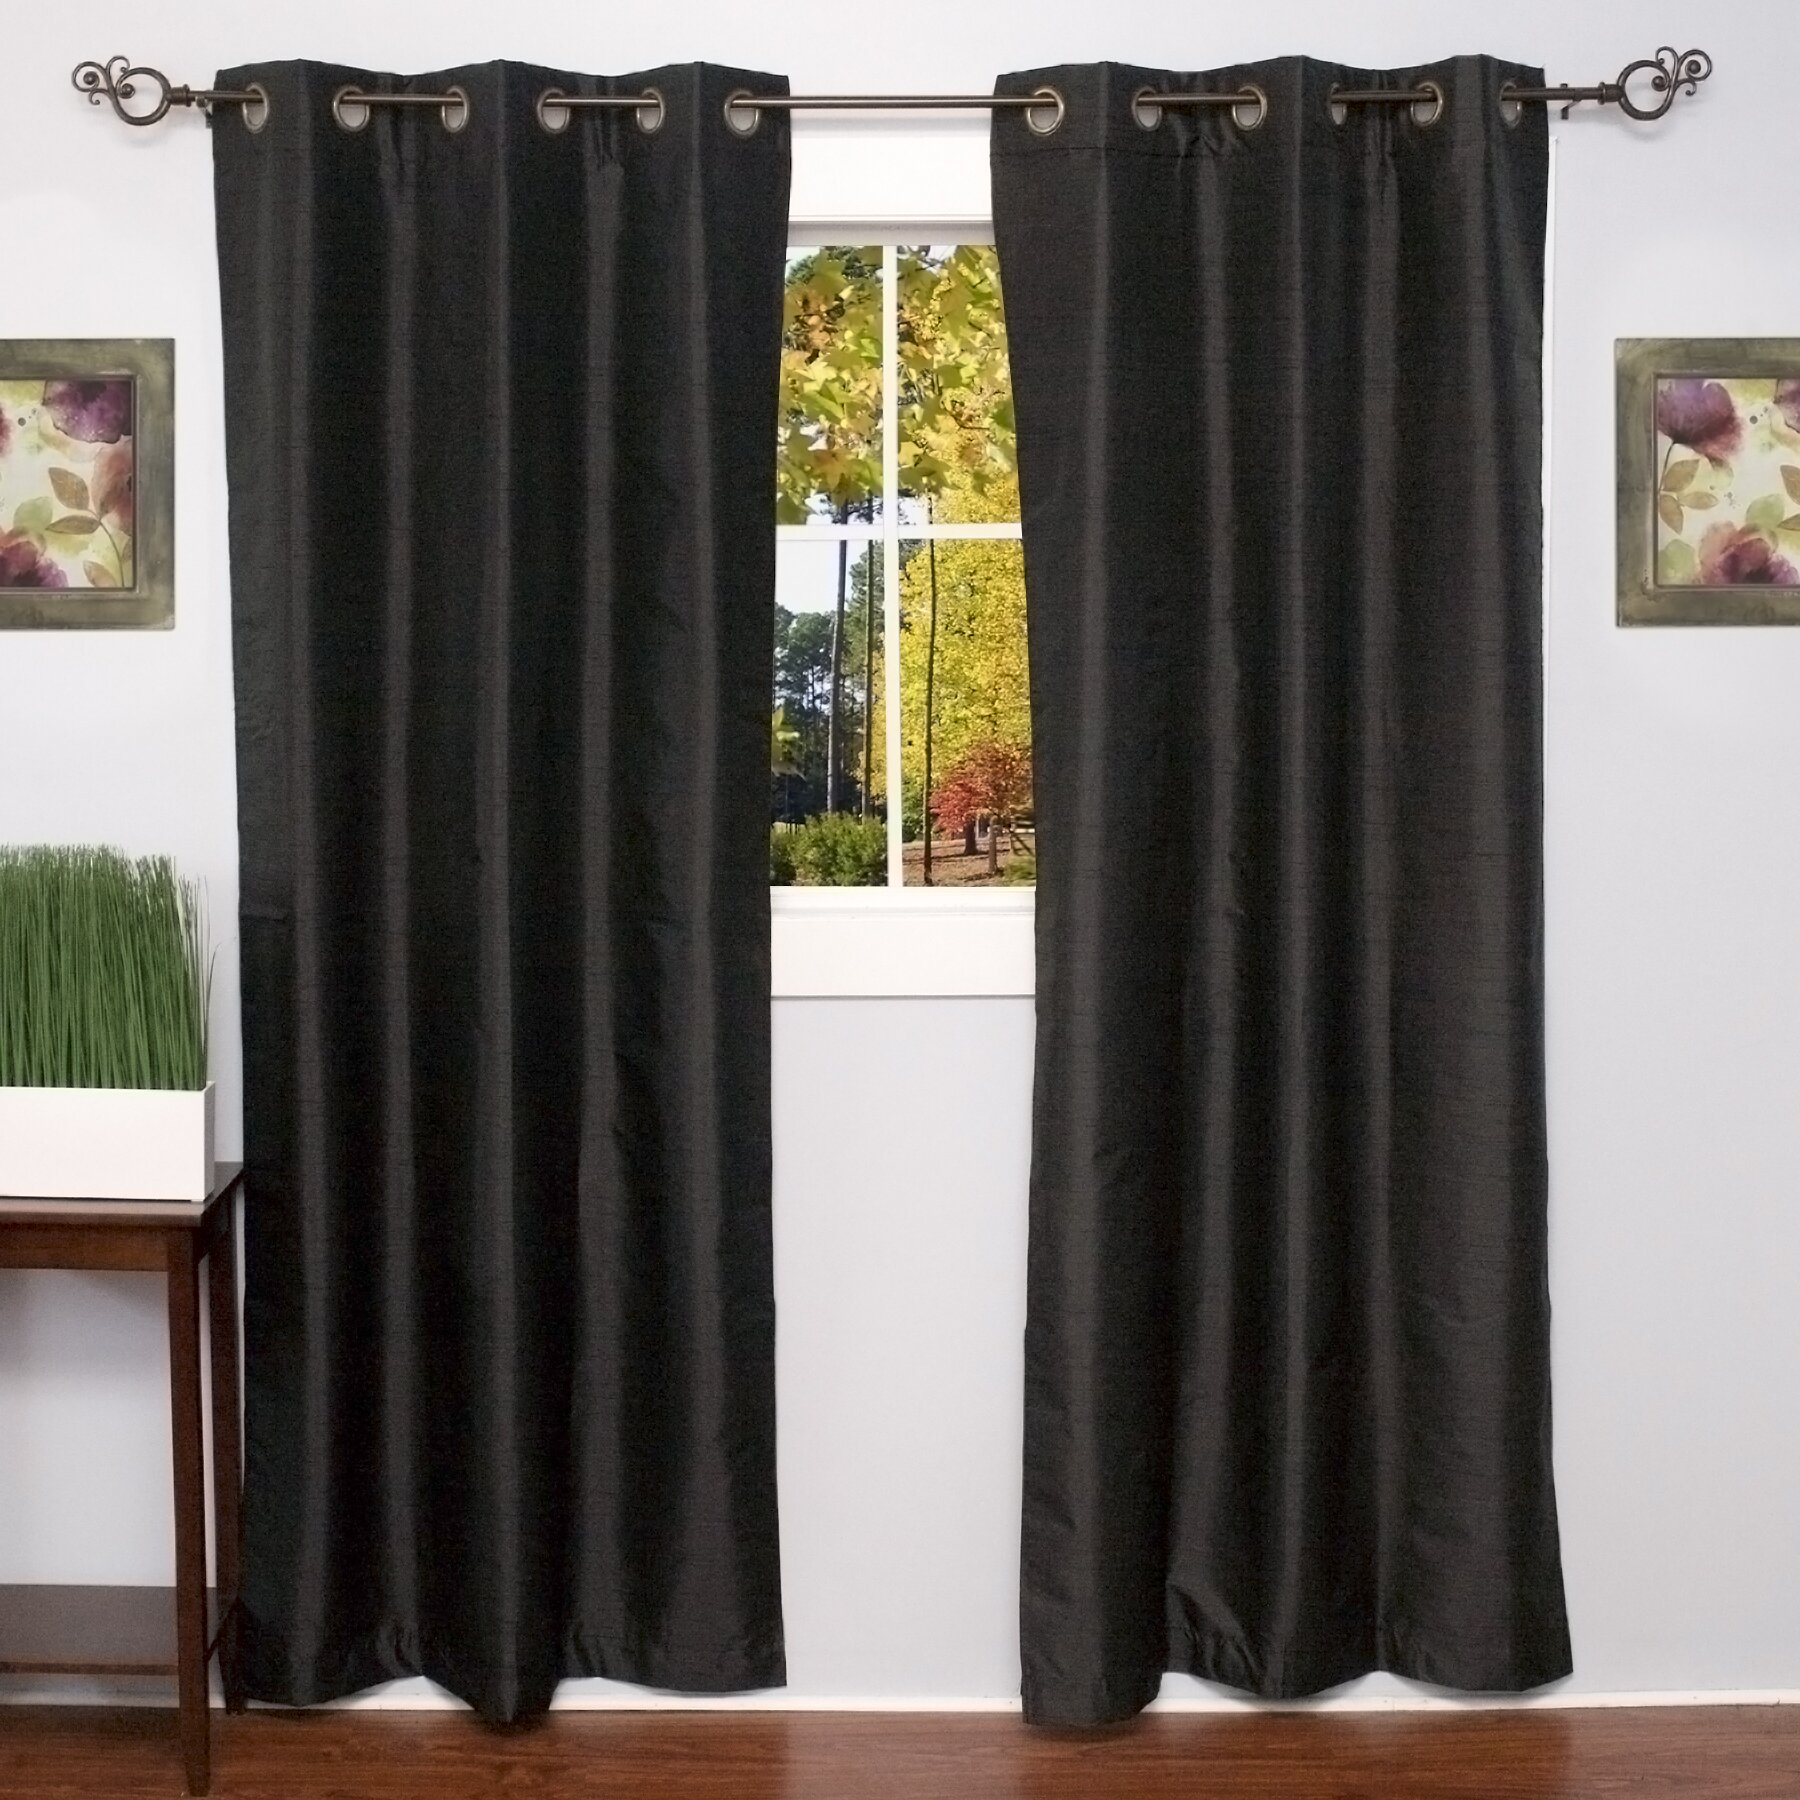 Sweet Home Collection Curtain Panel & Reviews | Wayfair